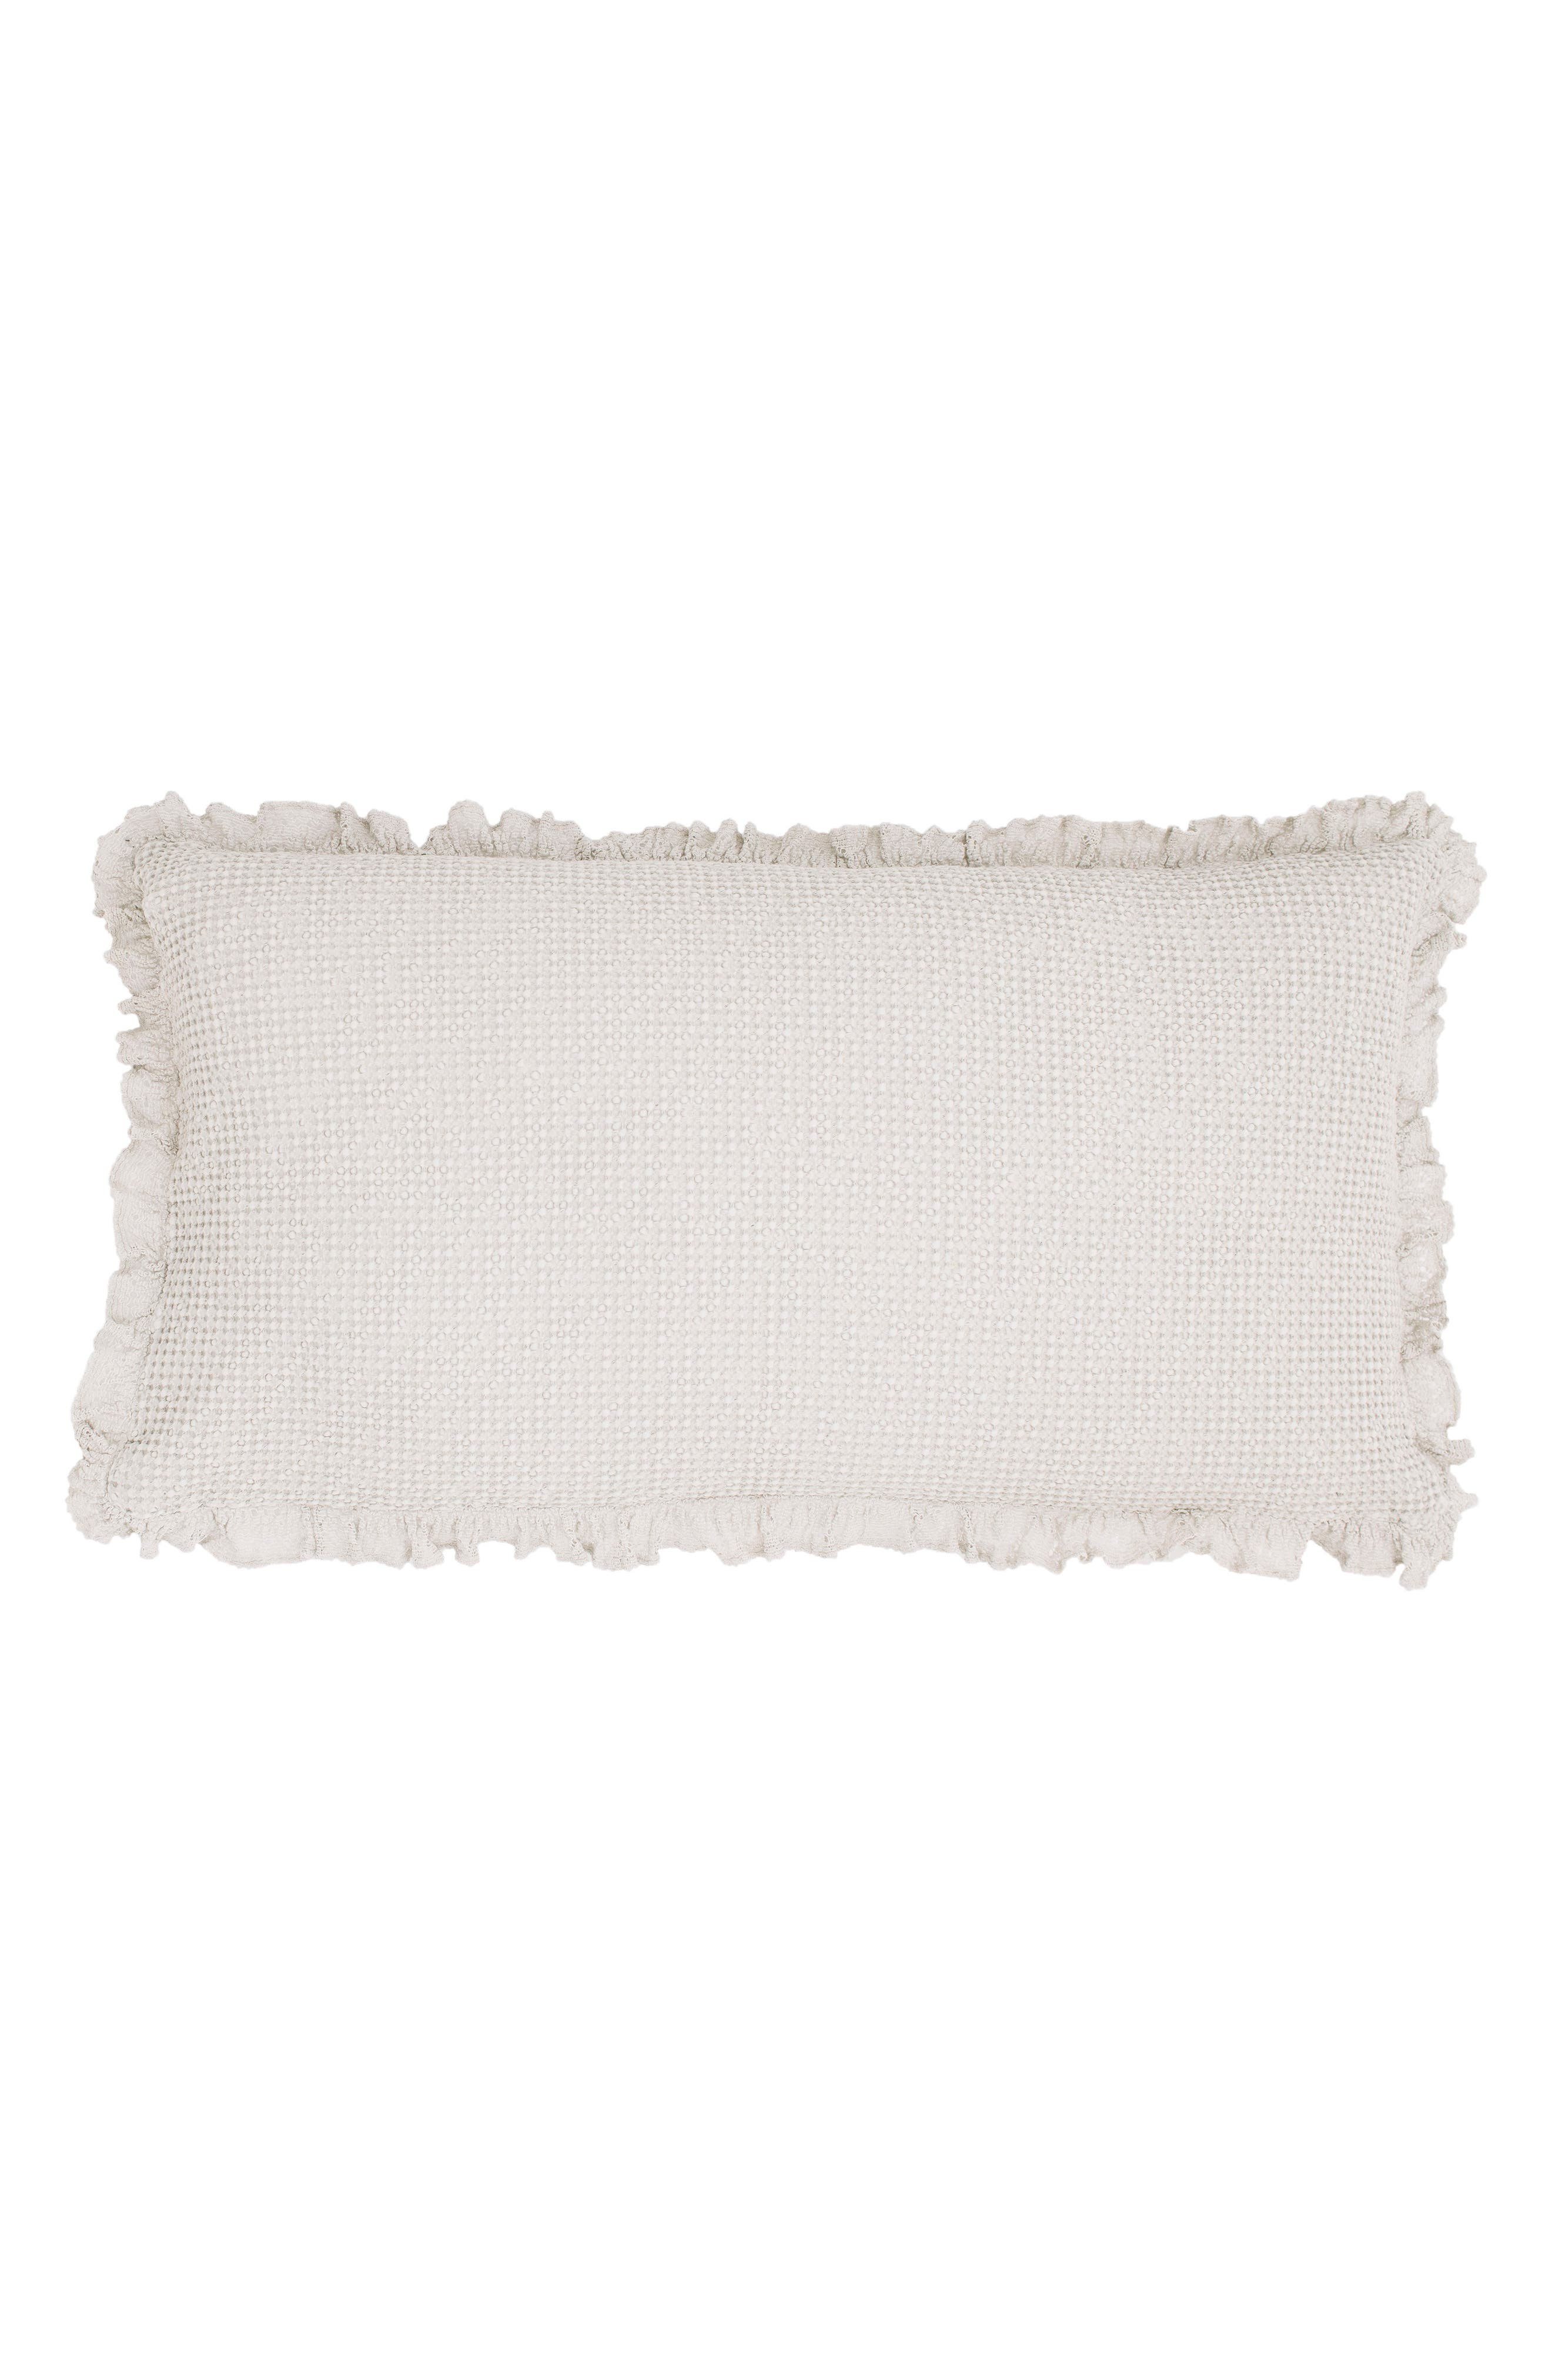 Lace Ruffle Accent Pillow,                             Main thumbnail 1, color,                             060